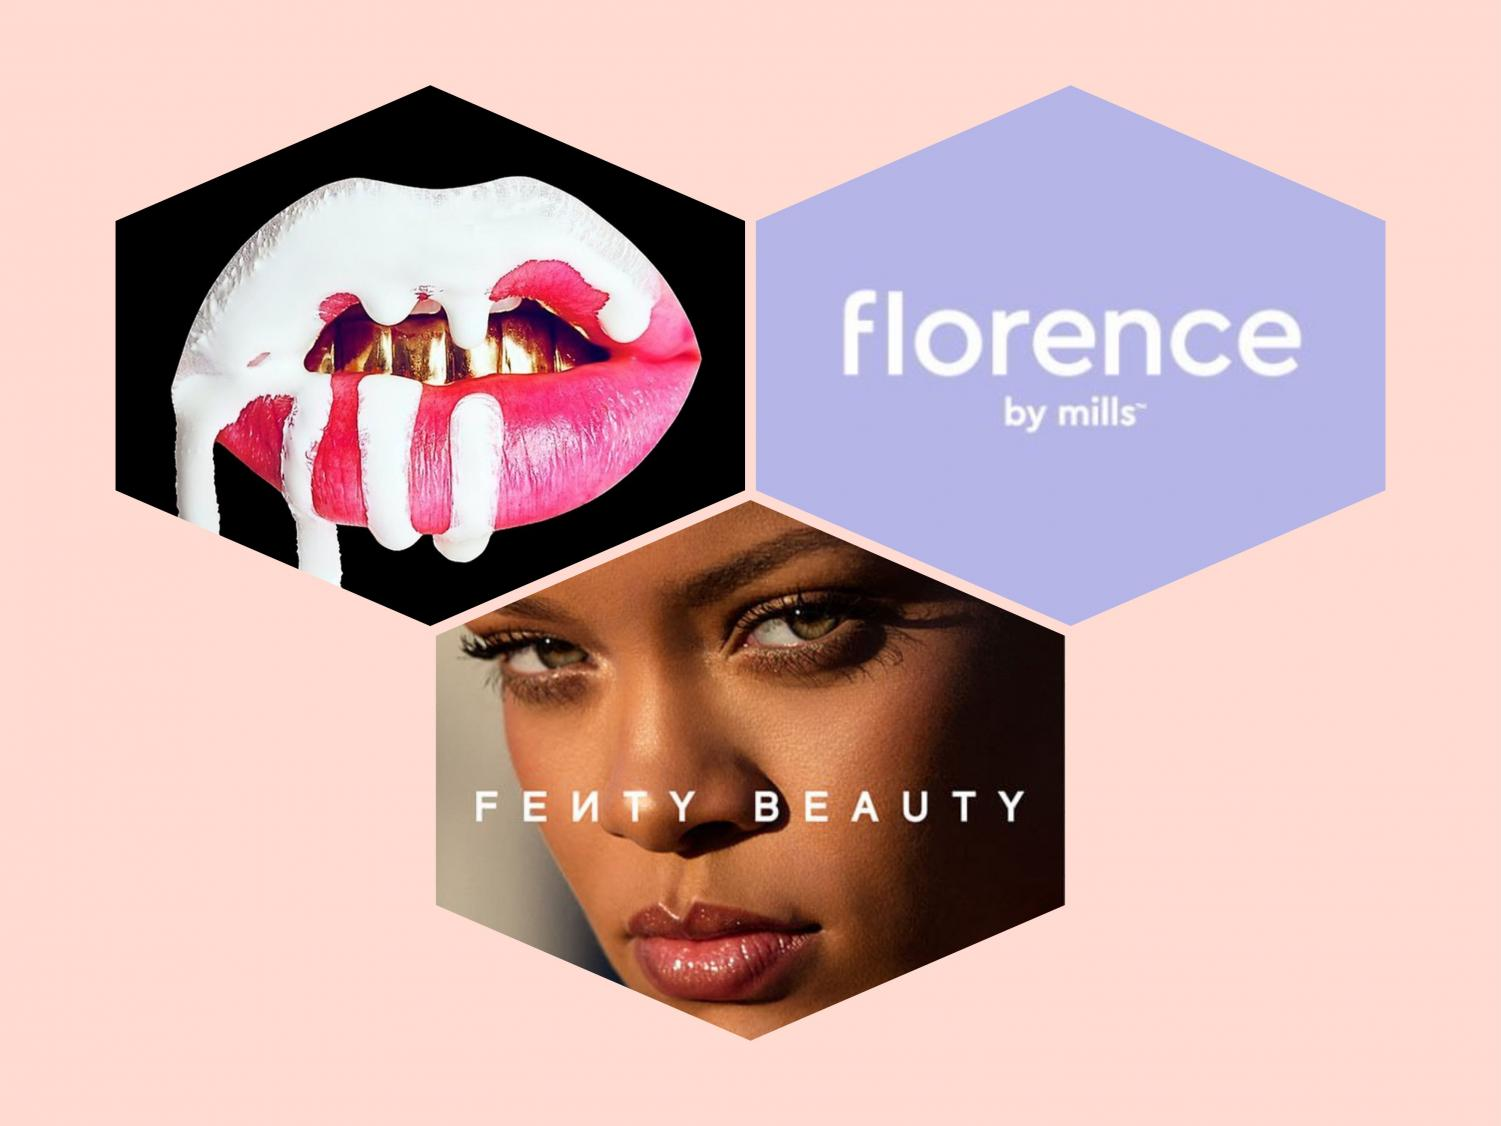 There have been countless of celebrity-produced makeup brands created in the past year.